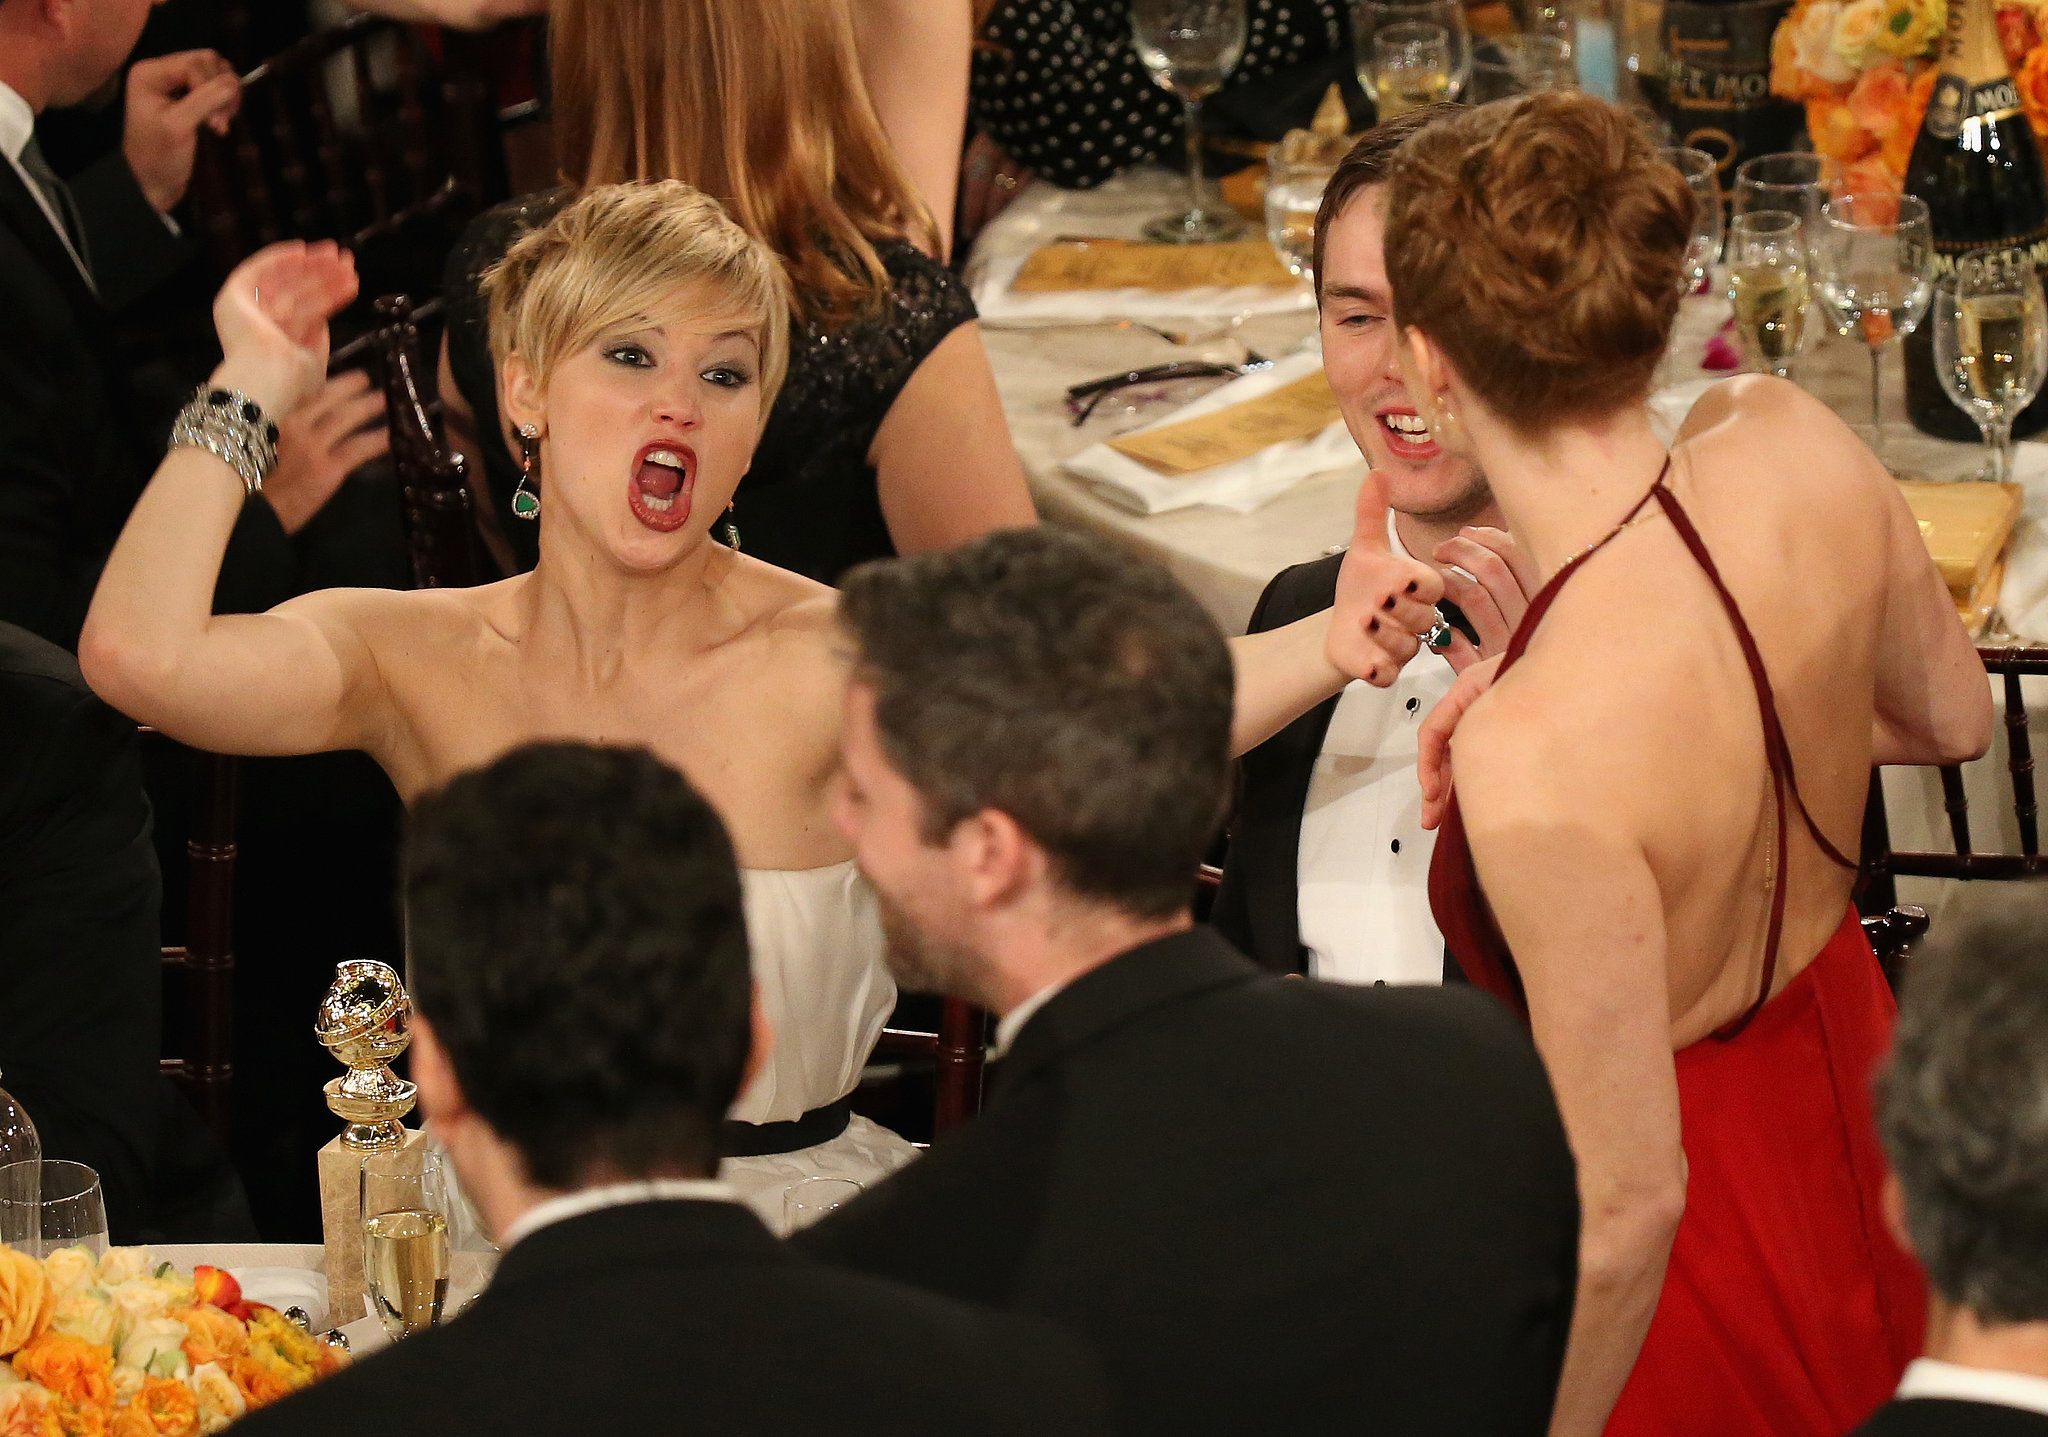 Jennifer Lawrence couldn't contain her excitement when Amy Adams won best actress for American Hustle. Source: Christopher Polk/NBC/NBCU Photo Bank/NBC